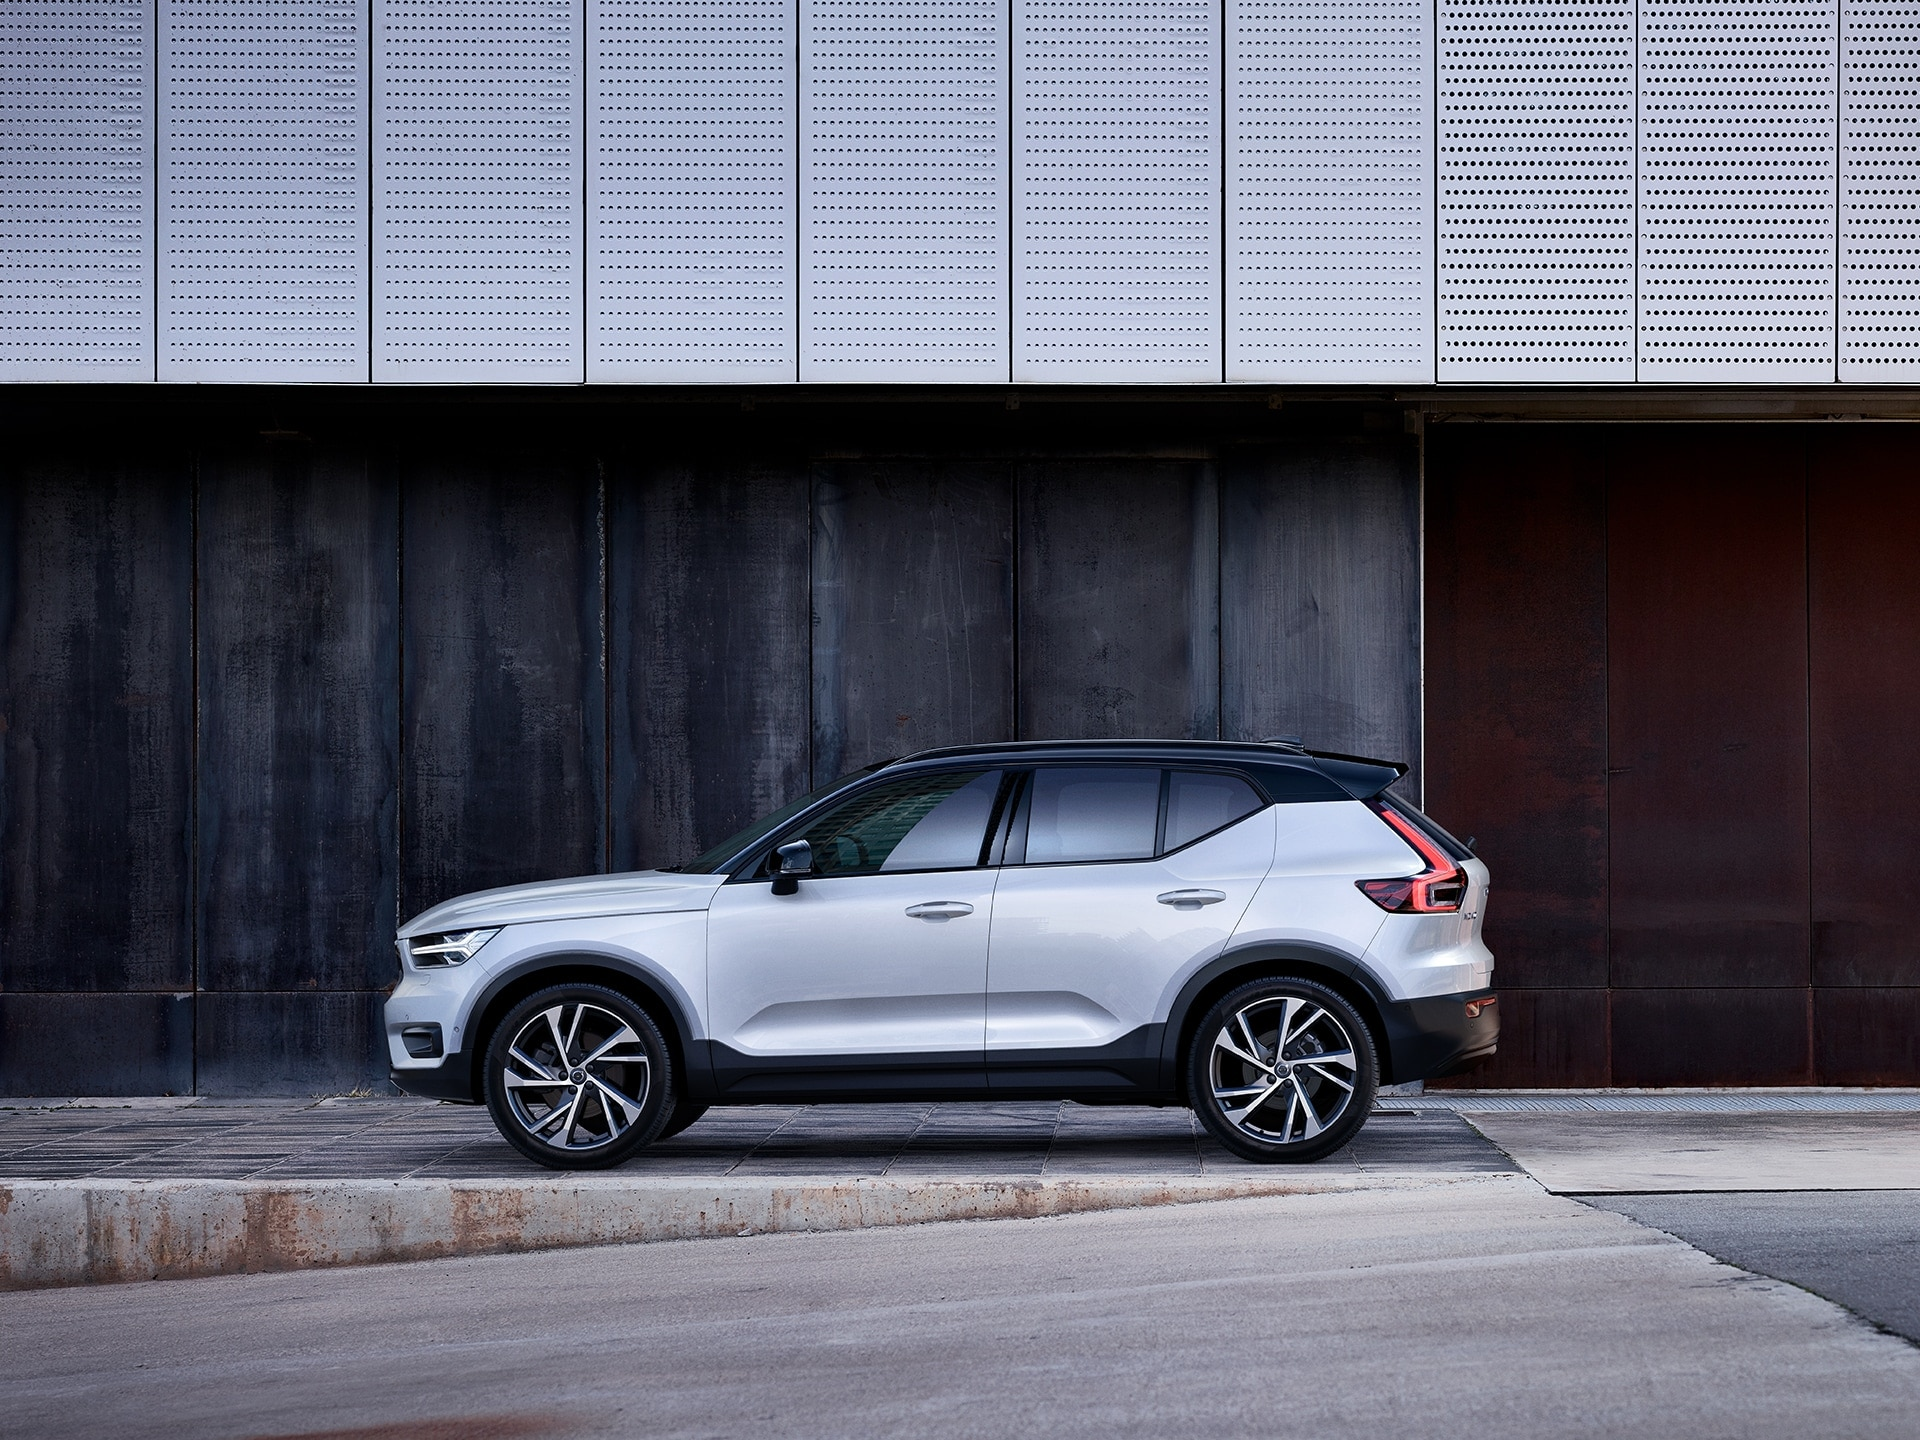 A white XC40 is parked outside a building